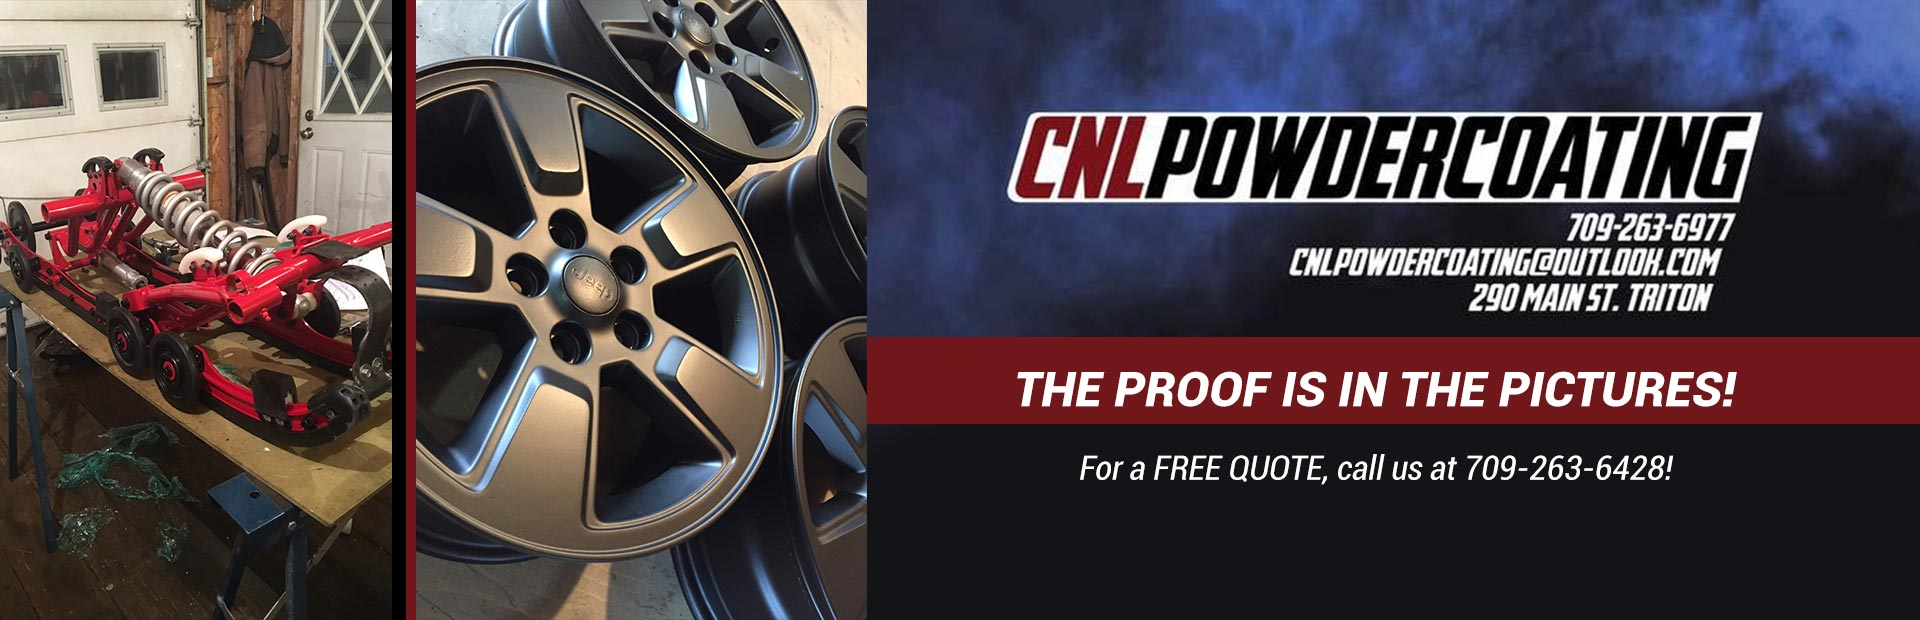 CNL Powder Coating: For a free quote, call us at 709-263-6428!